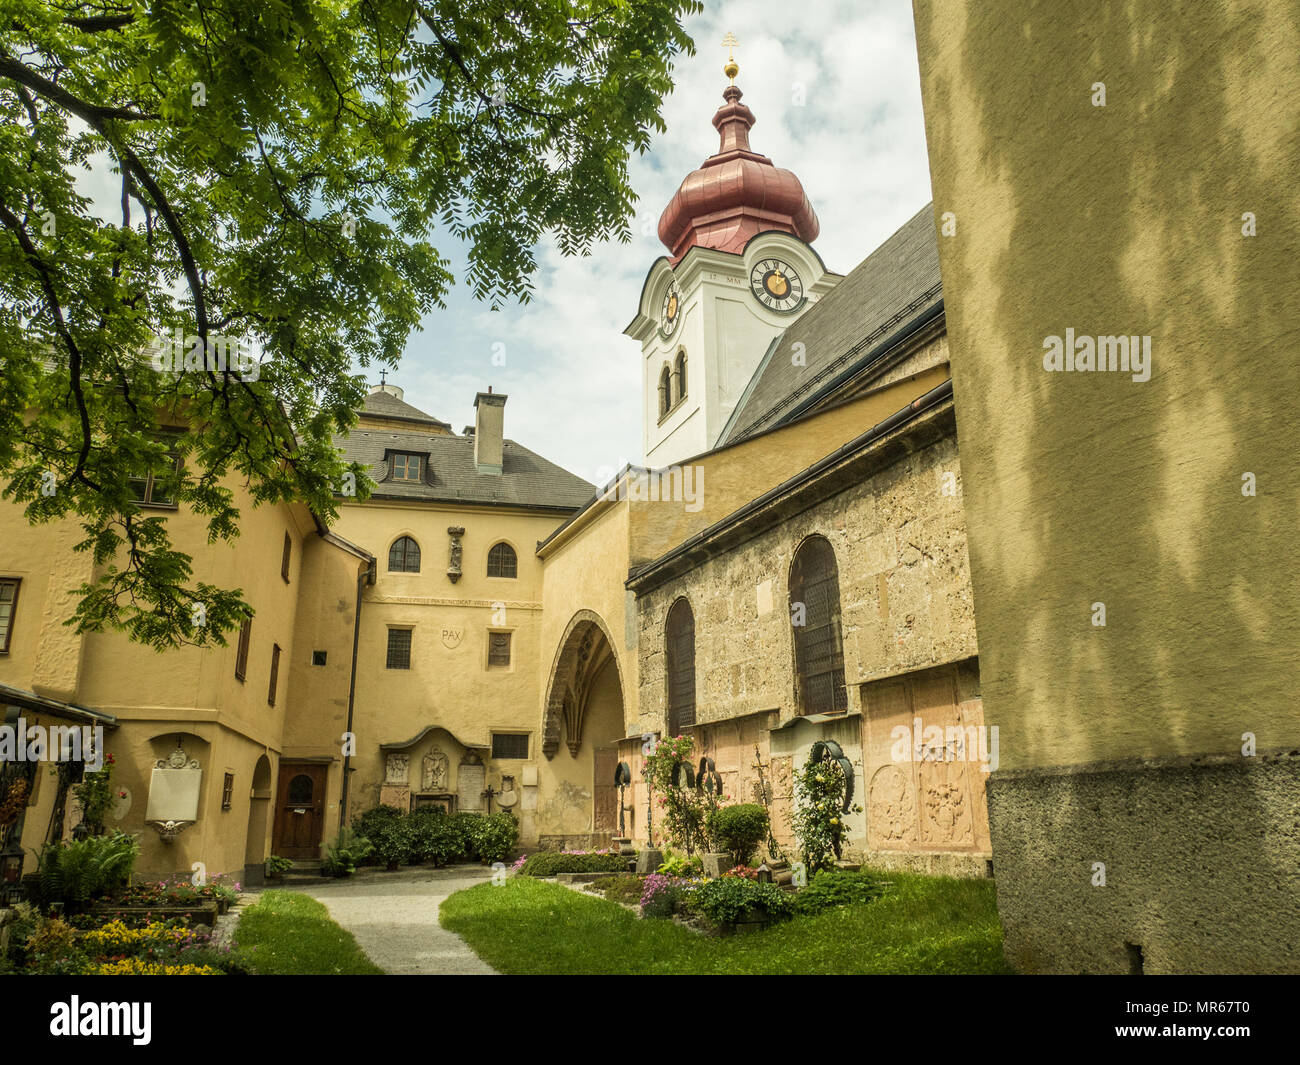 Nonnberg Abbey, a Benedictine Monastery in Salzburg, Austria. 'Maria Von Trapp' once lived here as depicted in the film 'The Sound of Music' - Stock Image